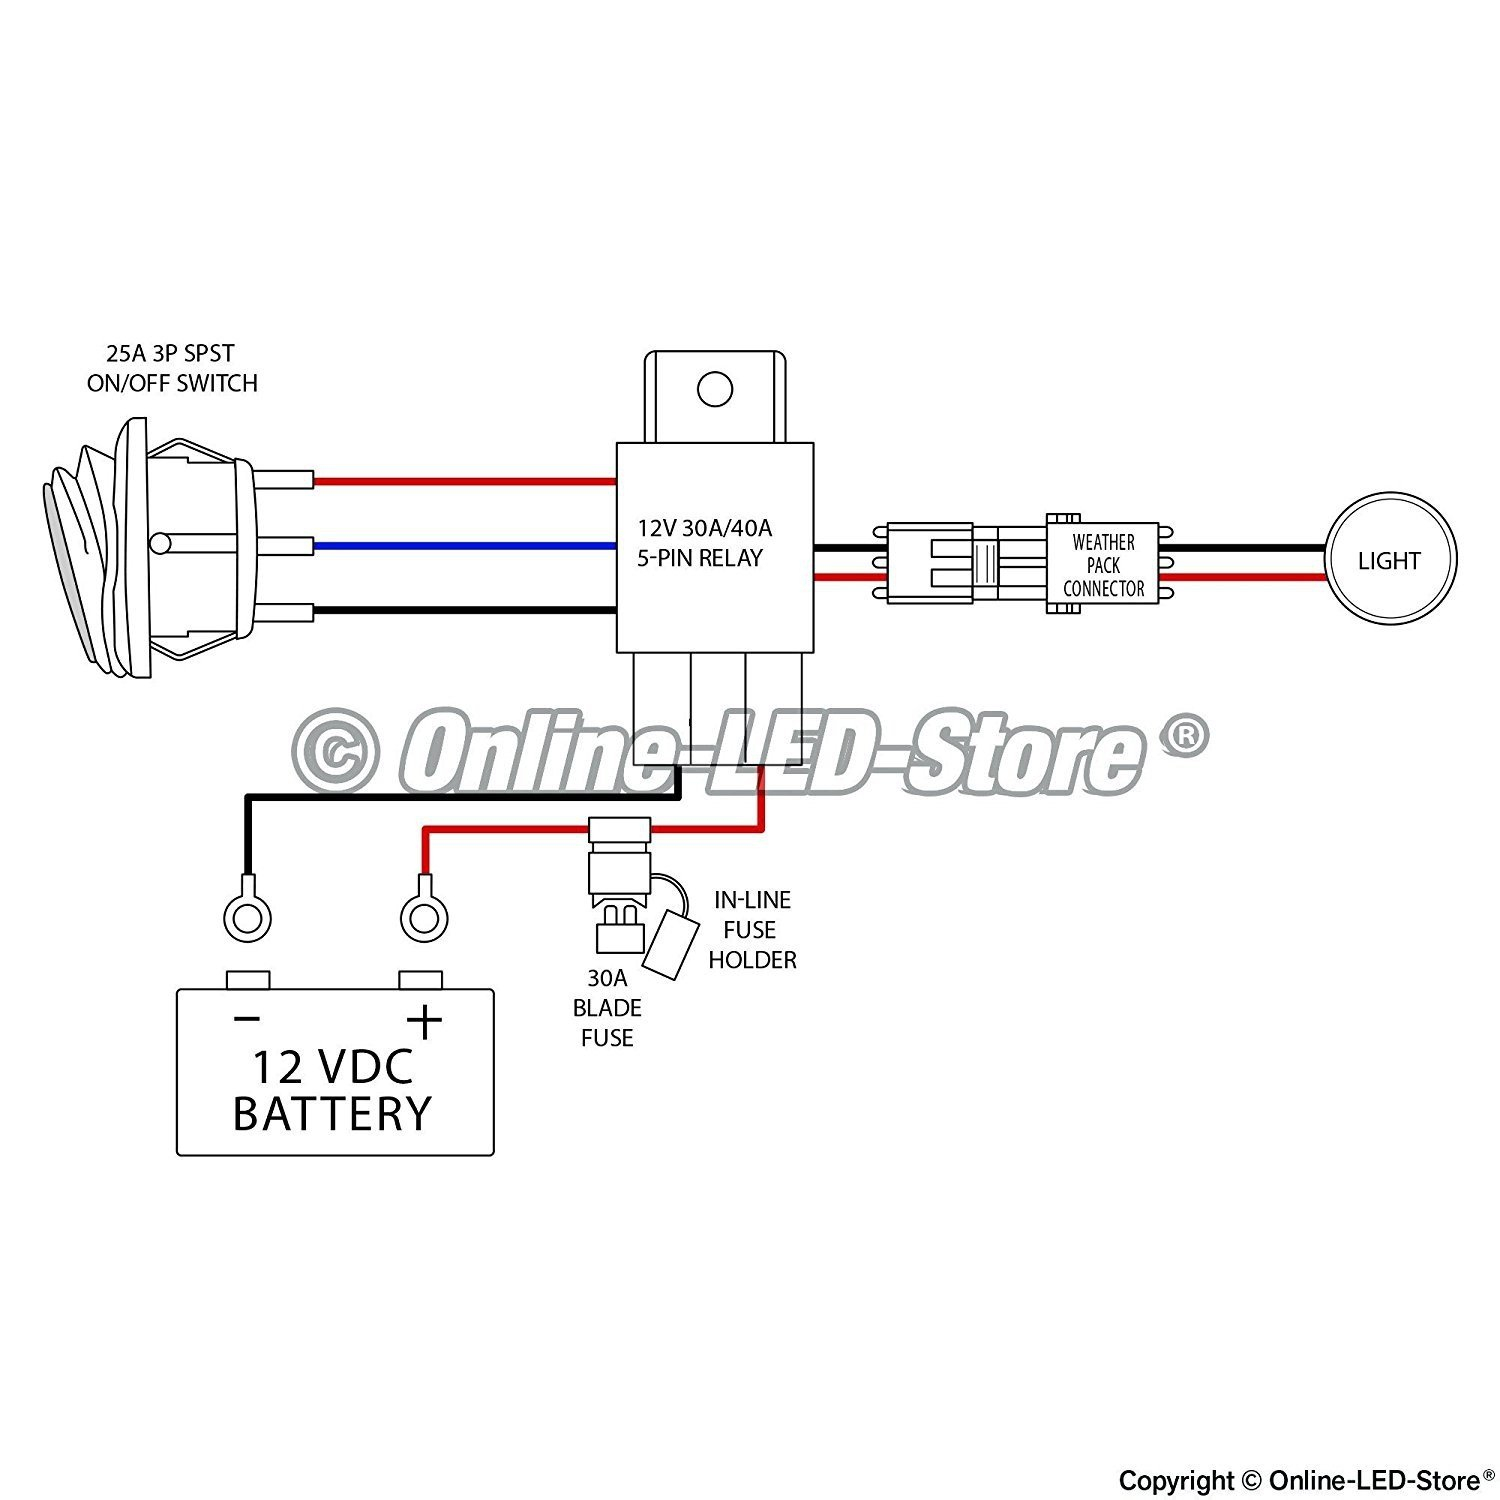 Mictuning    Usb    Toggle       Switch       Wiring       Diagram      USB    Wiring